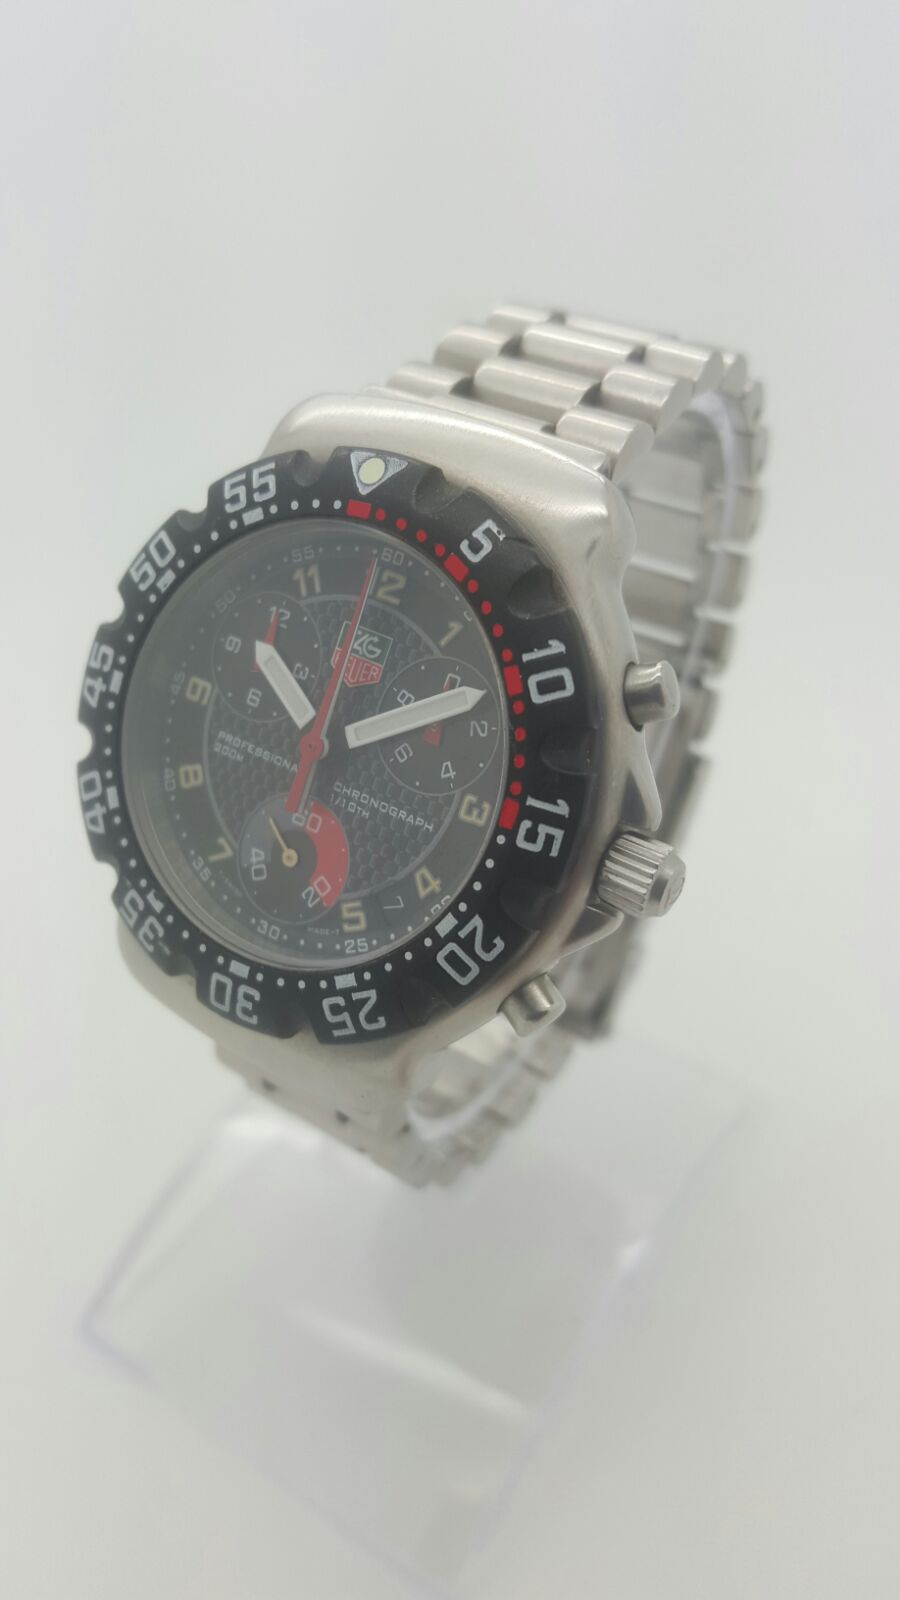 tag heuer gents f1 chrono ca1211 1 make tag heuer range f1 model ca1211 1 box no papers